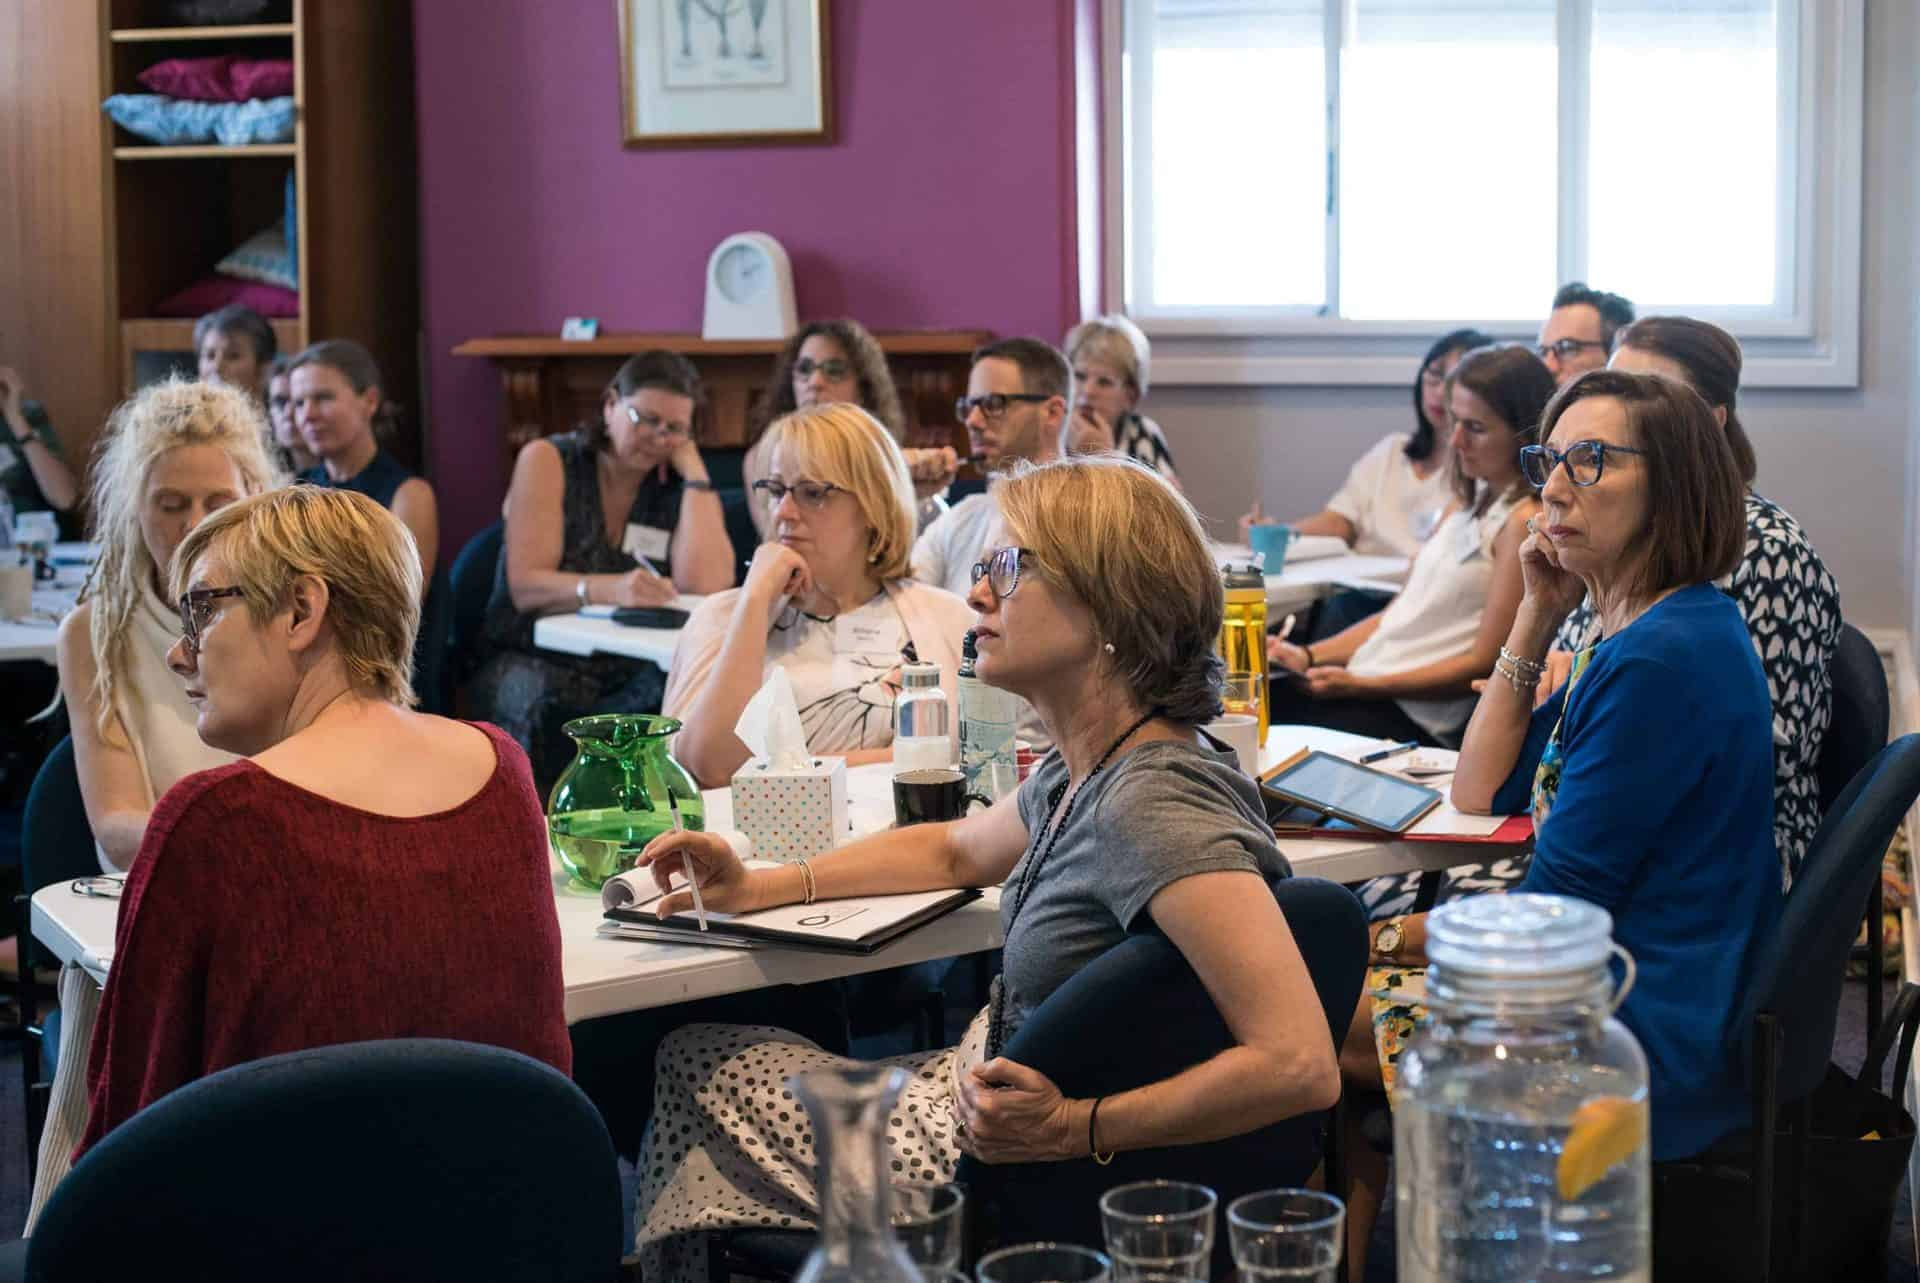 Australian Assembly on Affect and Attachment: Theory into Practice with Emotionally Focused Therapy (EFT) 1 - Melbourne EFT